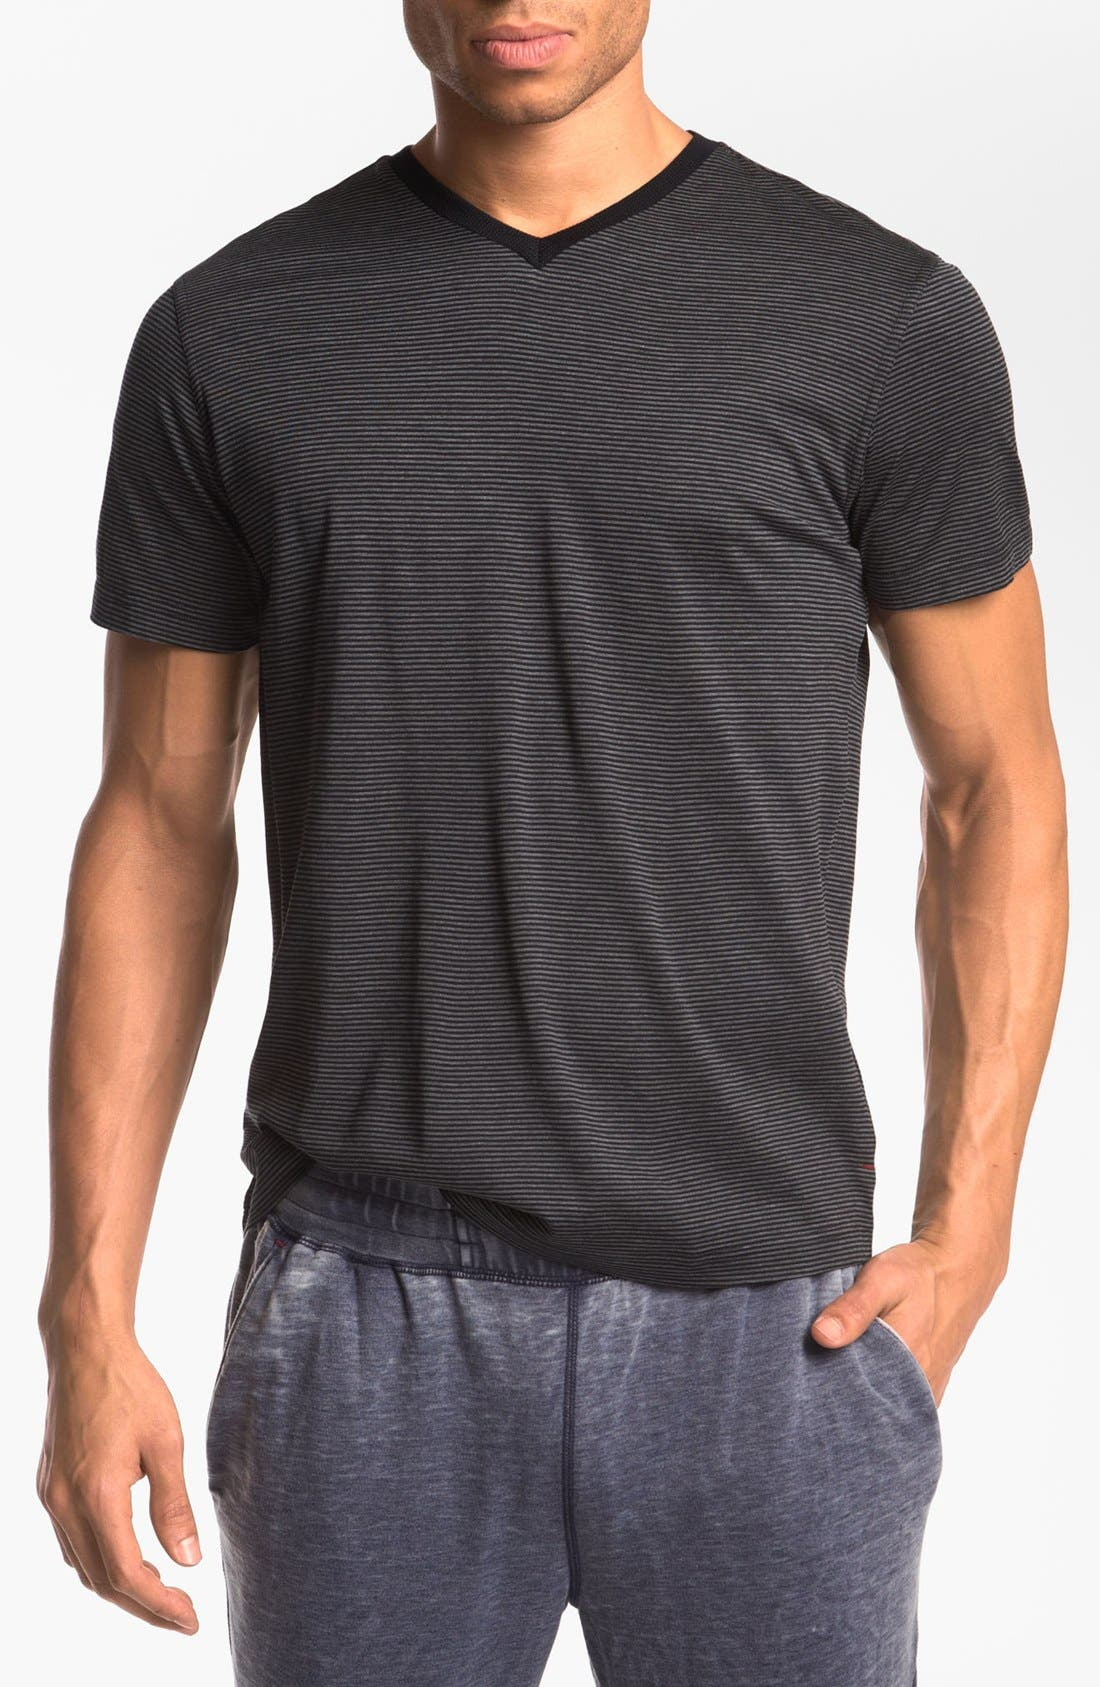 Main Image - Daniel Buchler Silk & Cotton V-Neck T-Shirt